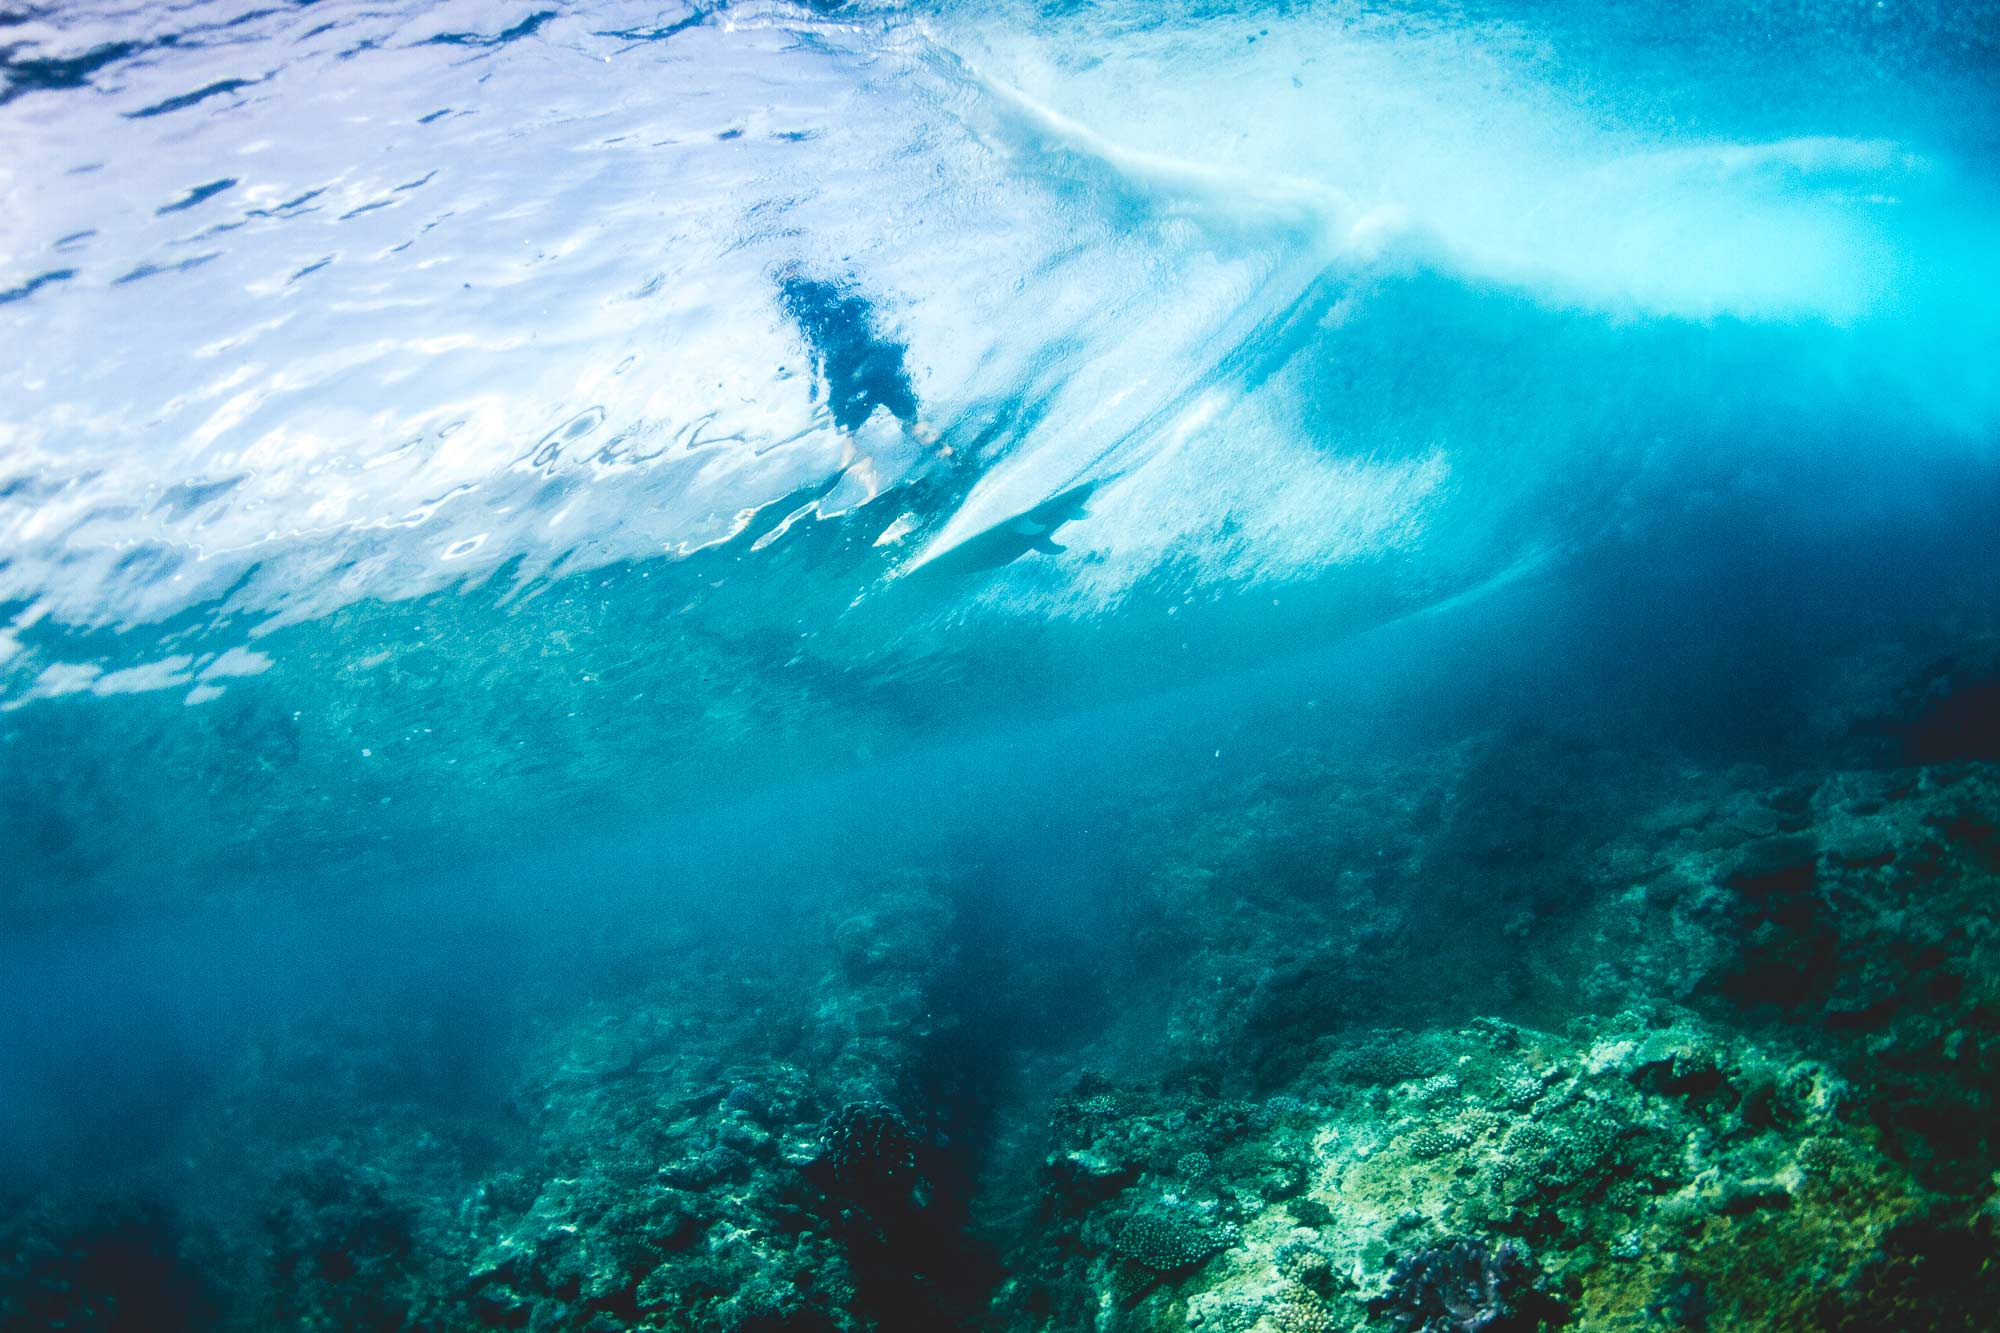 Beneath the wave with surfer at resturants surf break in Fiji